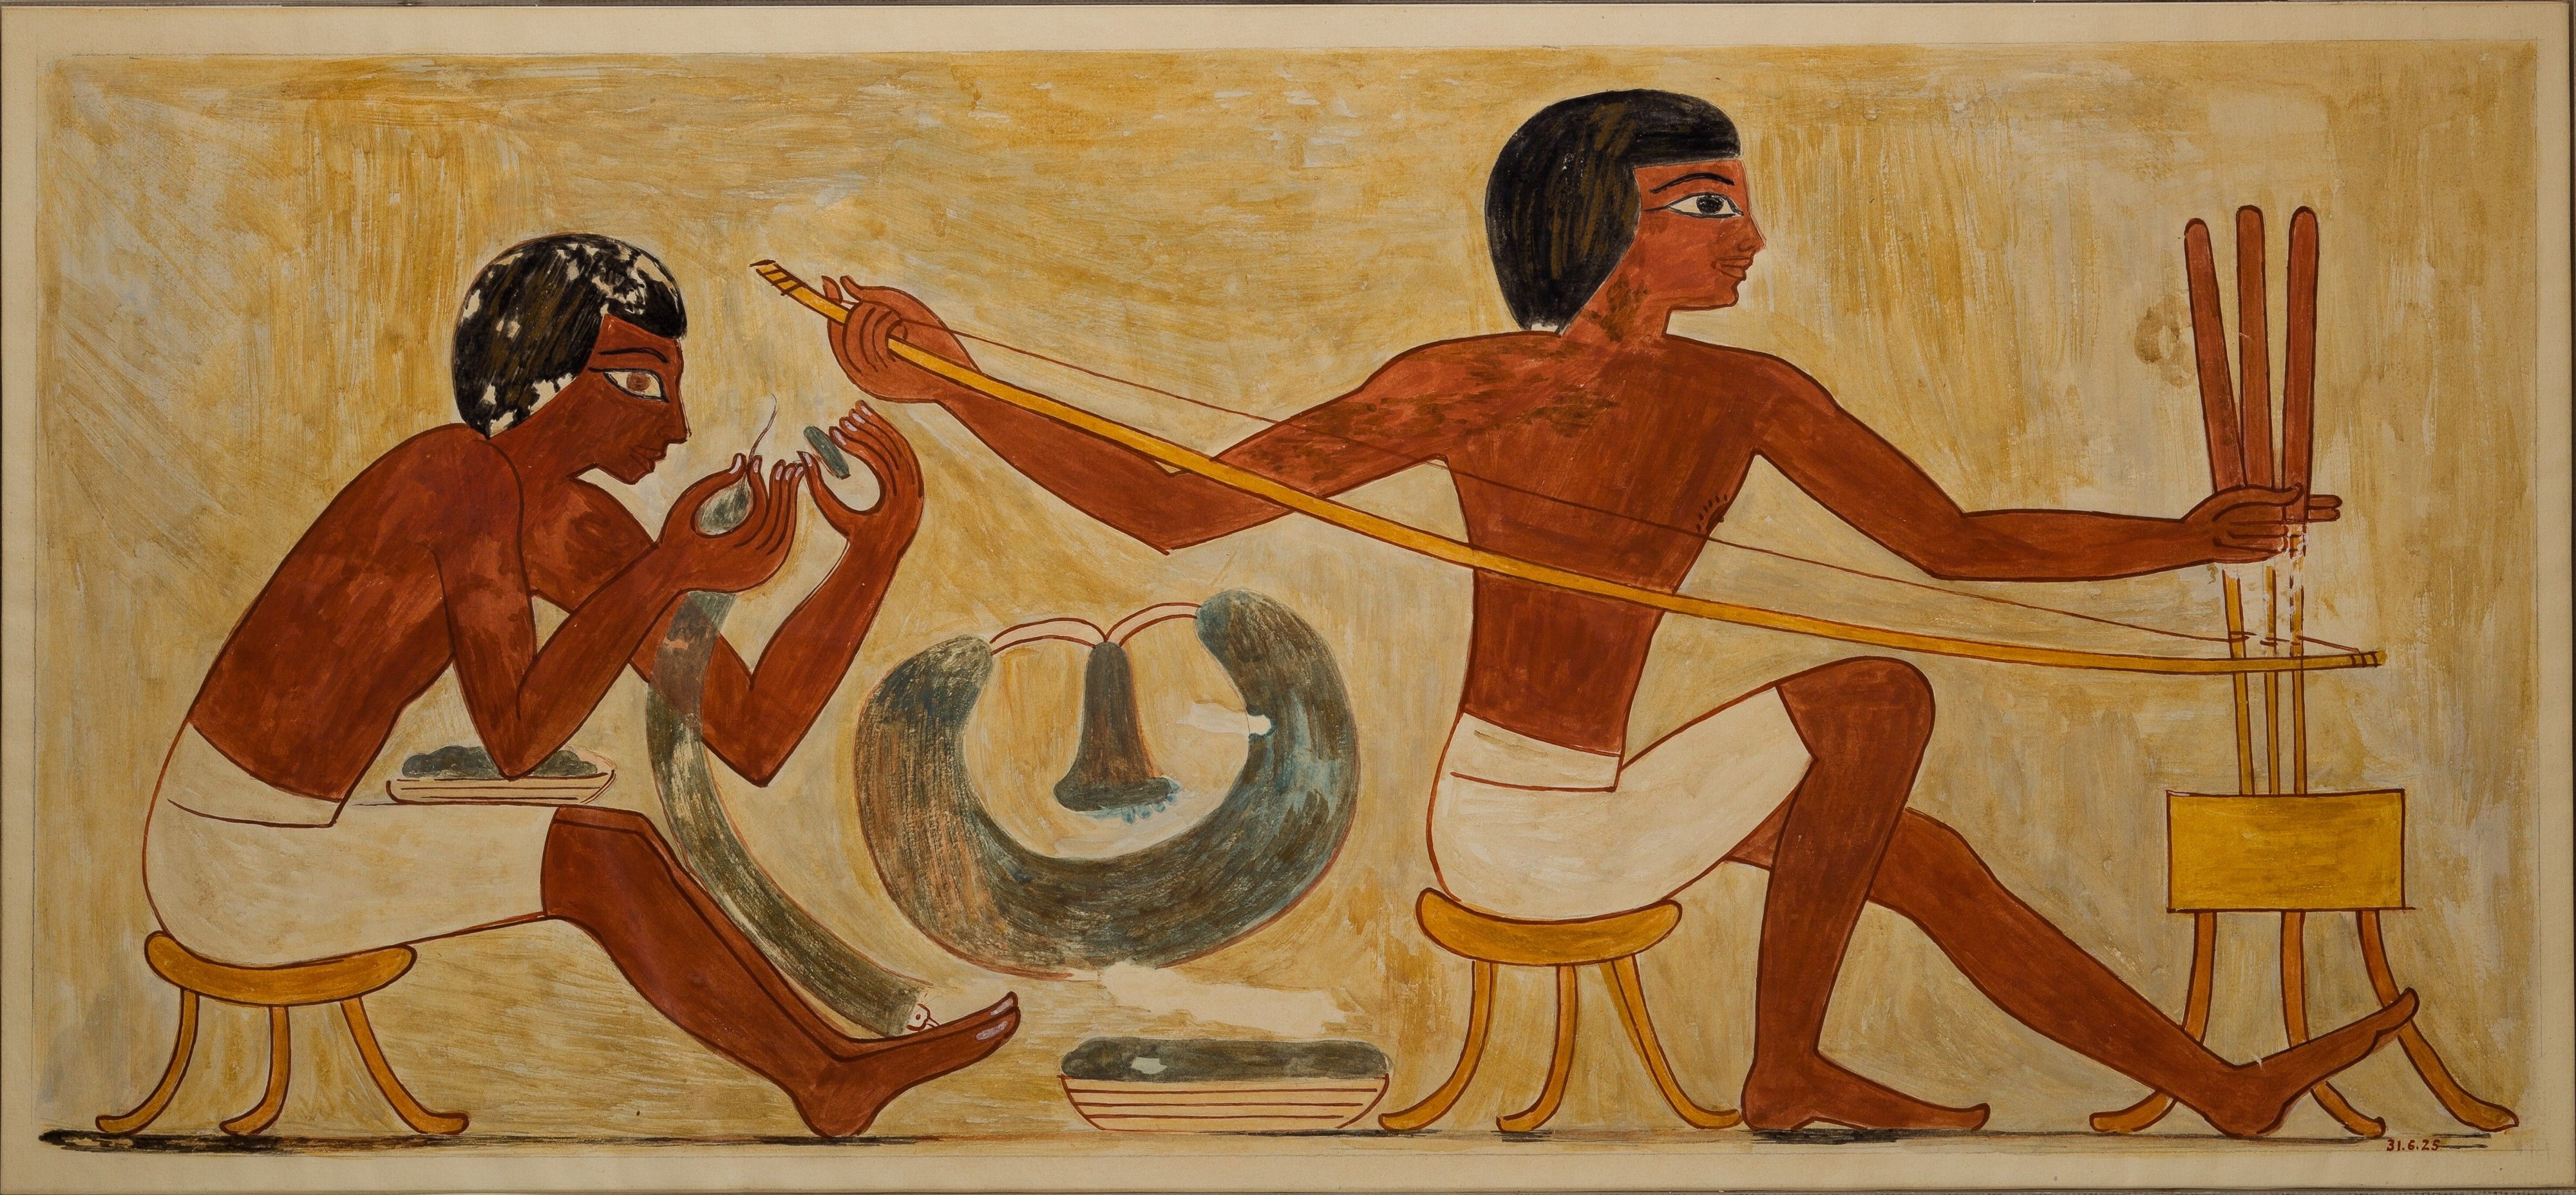 Stringing and Drilling Beads, Tomb of Rekhmire ca. 1504–1425 B.C.